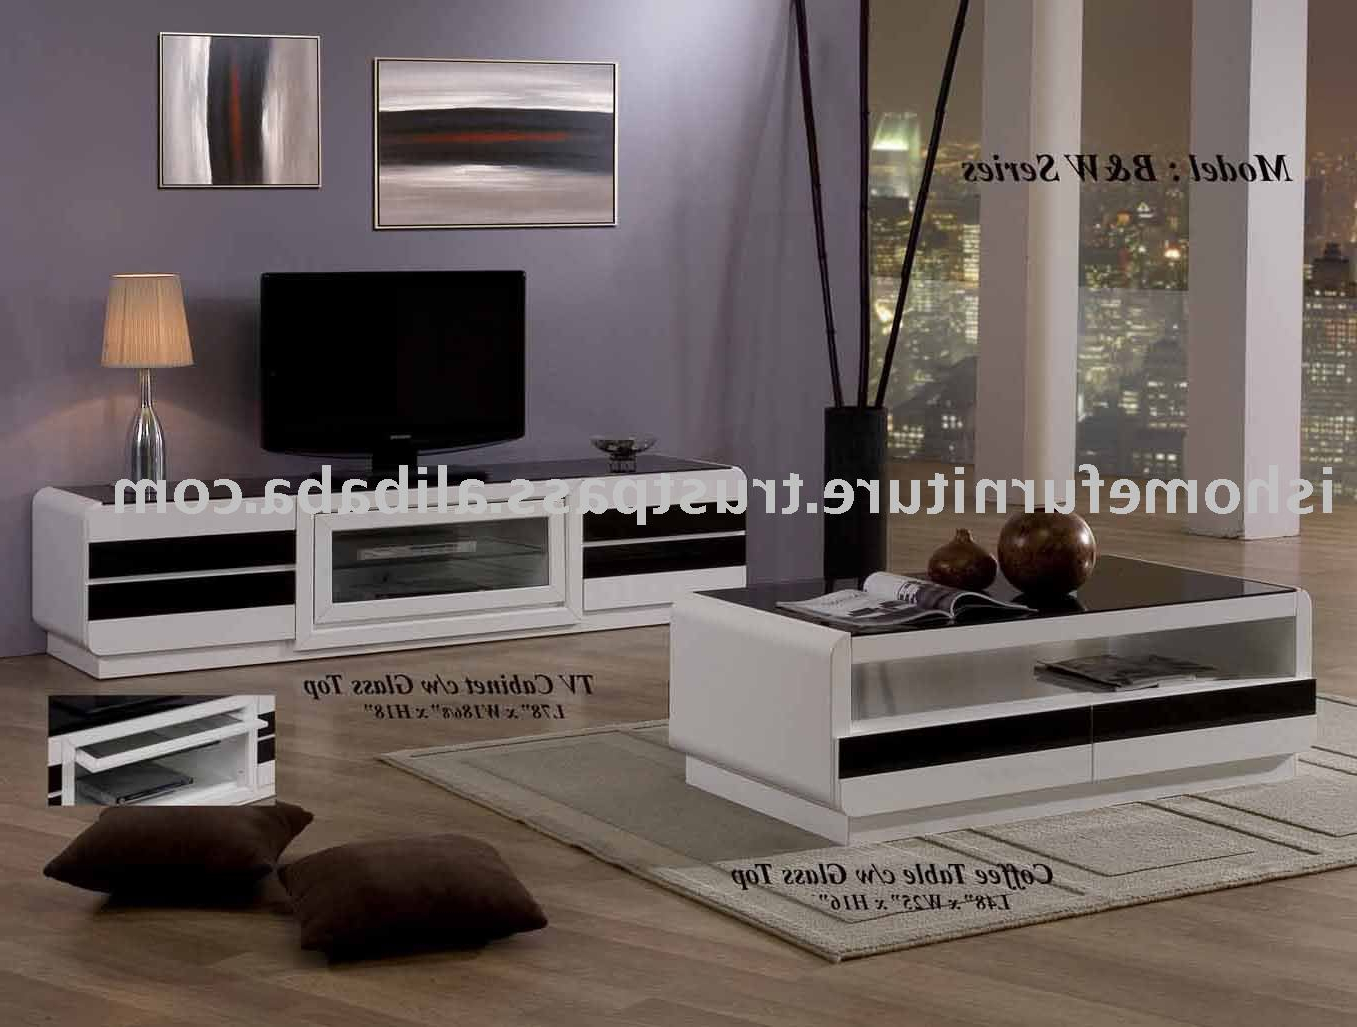 Preview Full: Bw Series Coffee Tabletv Stand Buy Home Pertaining To Latest Tv Unit And Coffee Table Sets (Gallery 11 of 20)